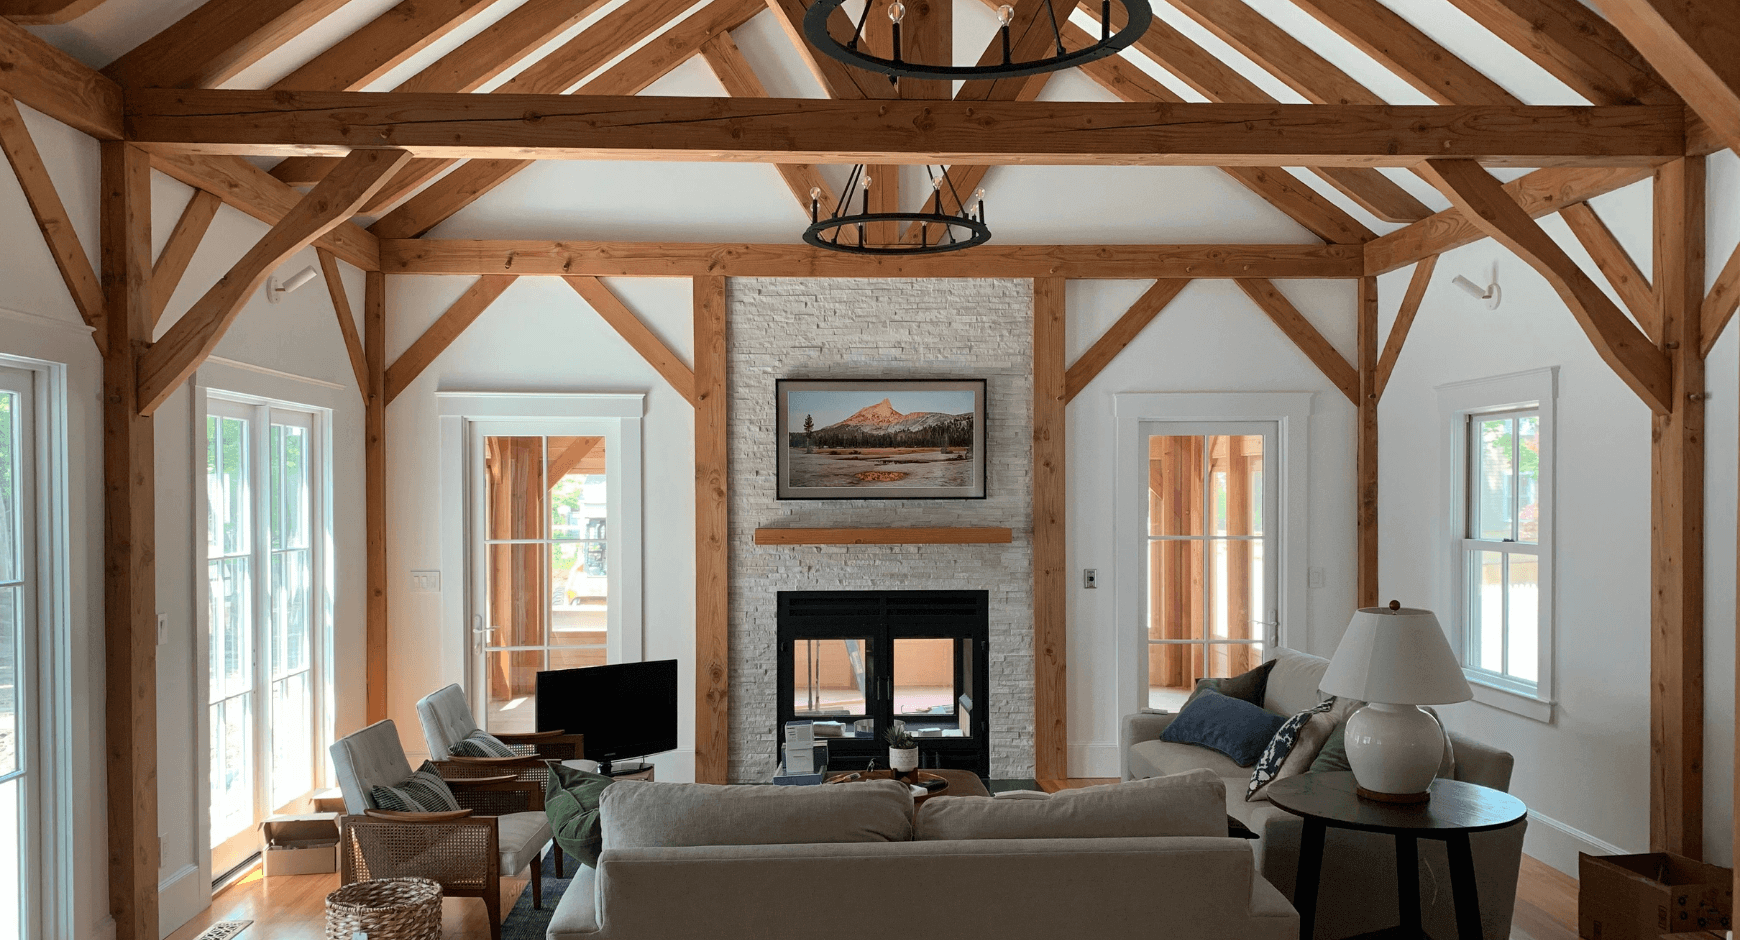 Traditional 4 Season Room with a Fireplace